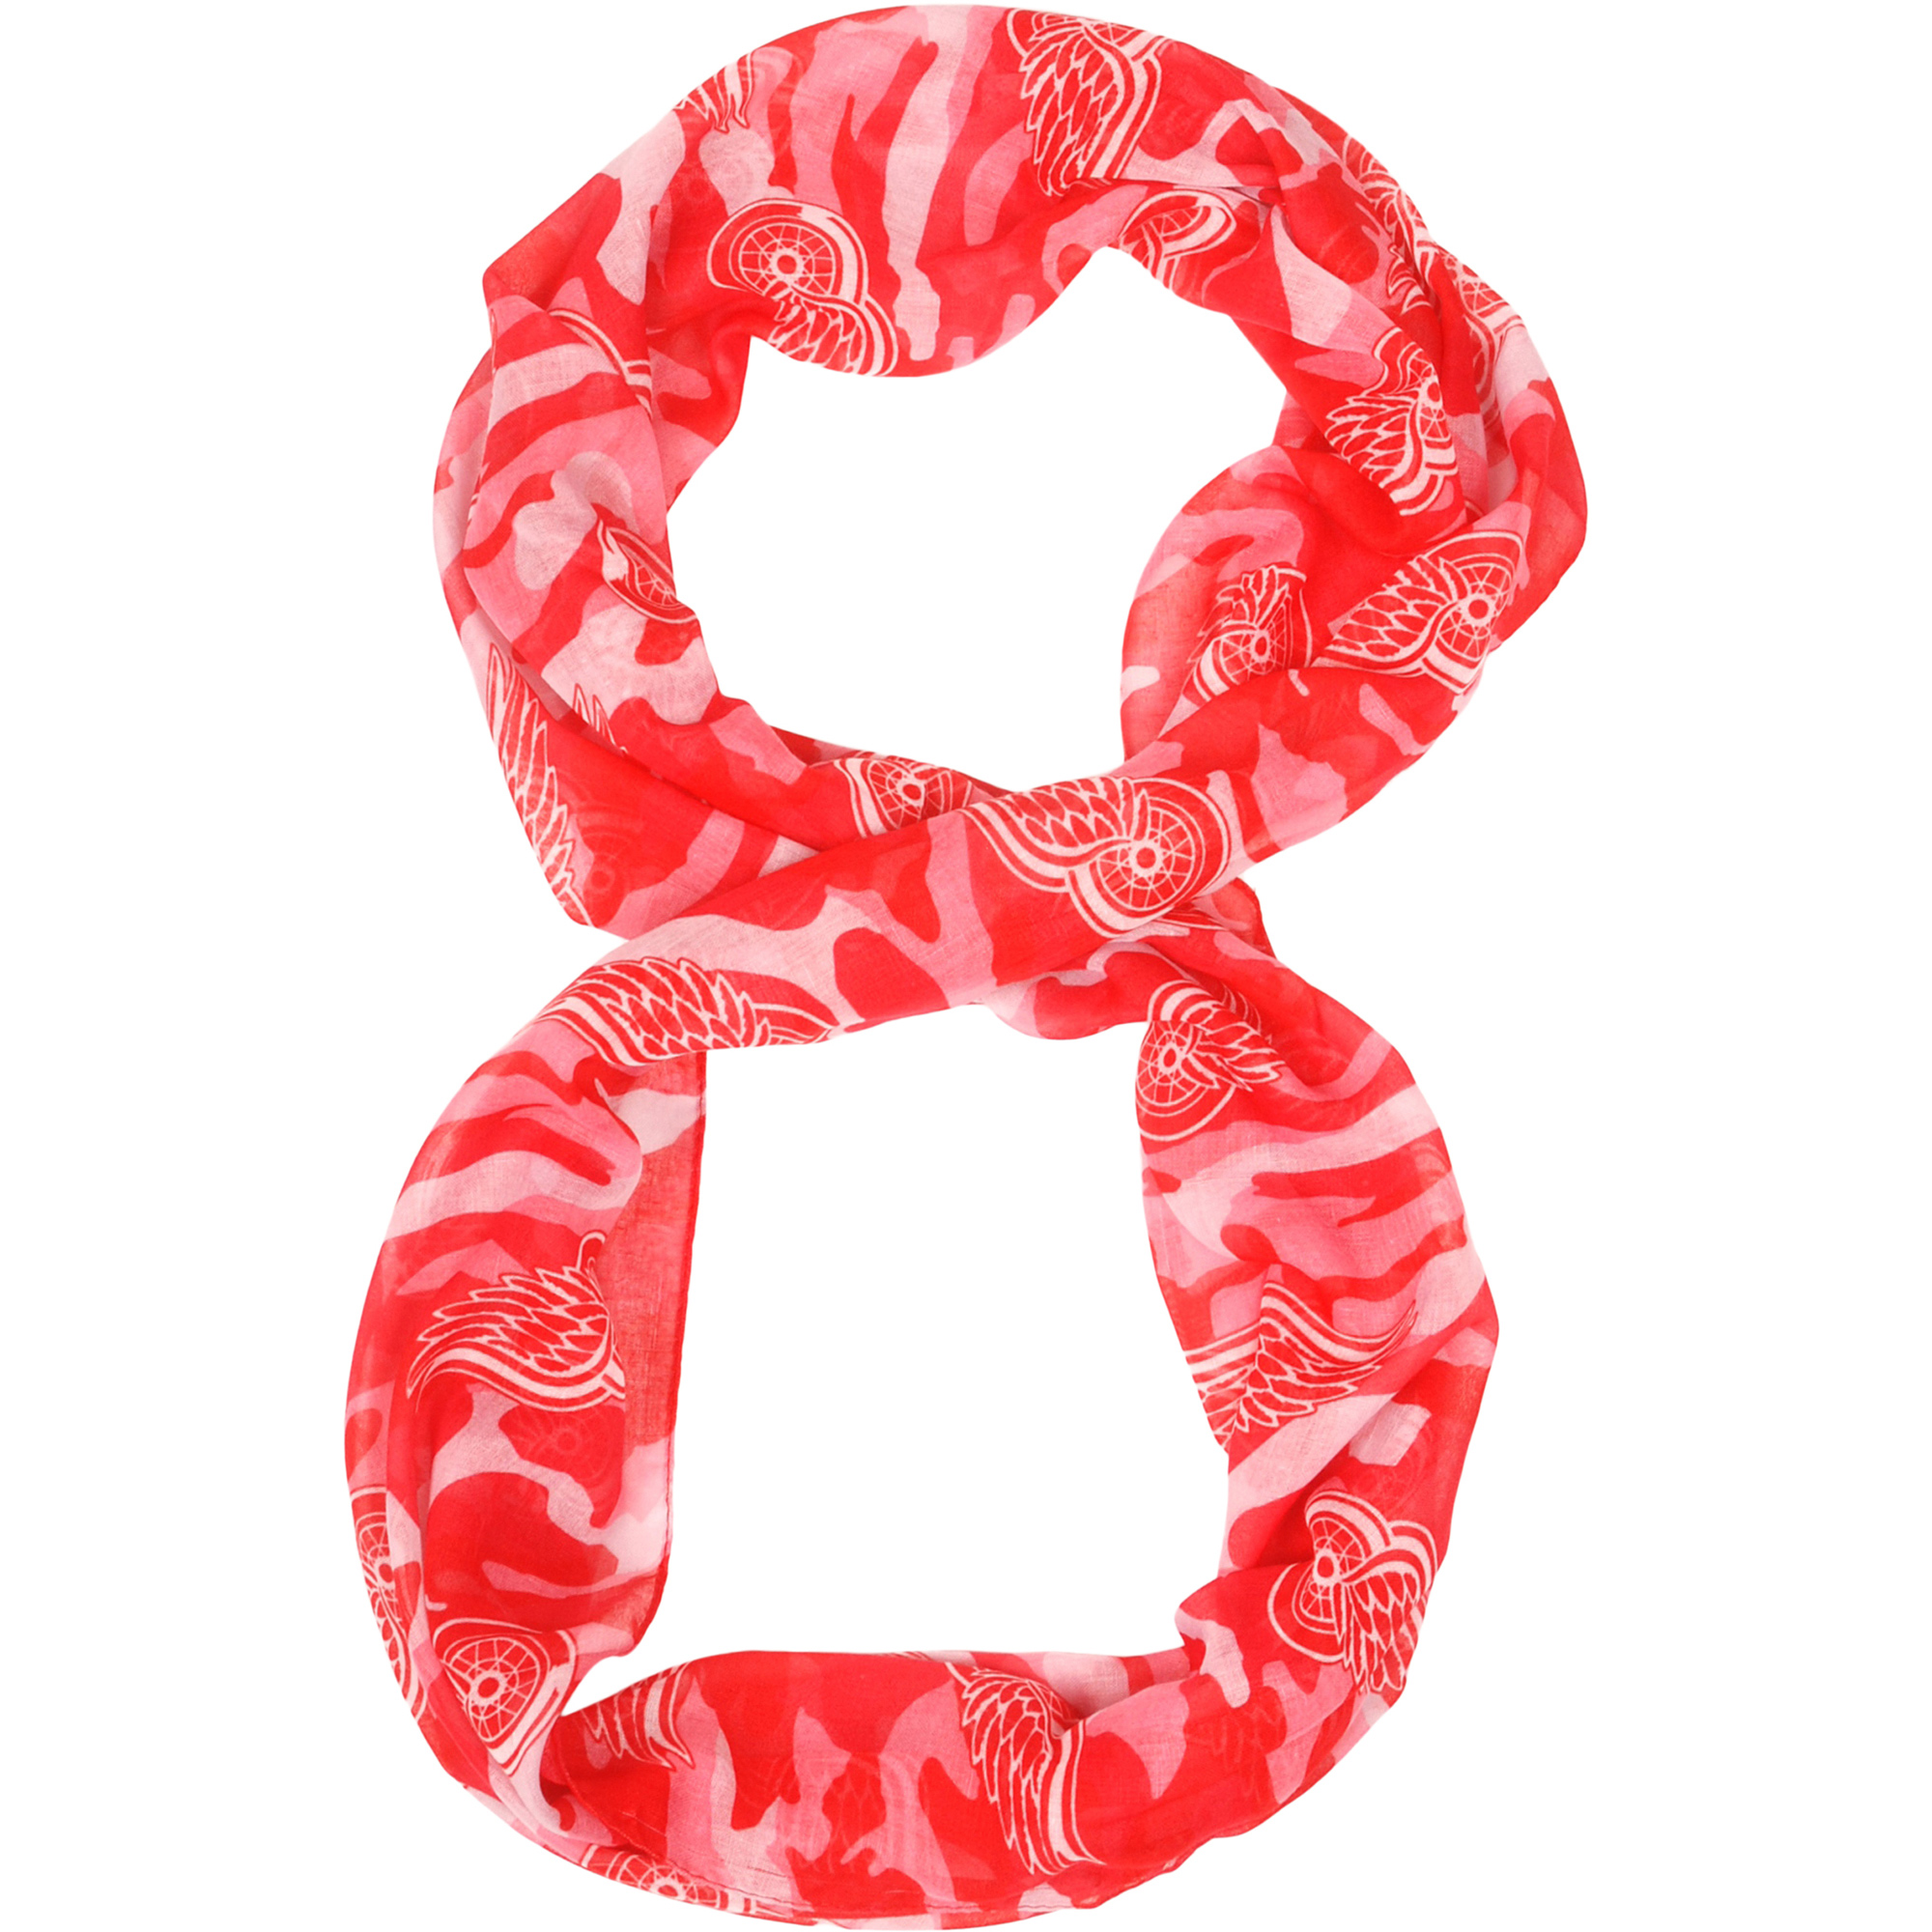 Detroit Red Wings Camo Infinity Scarf - No Size